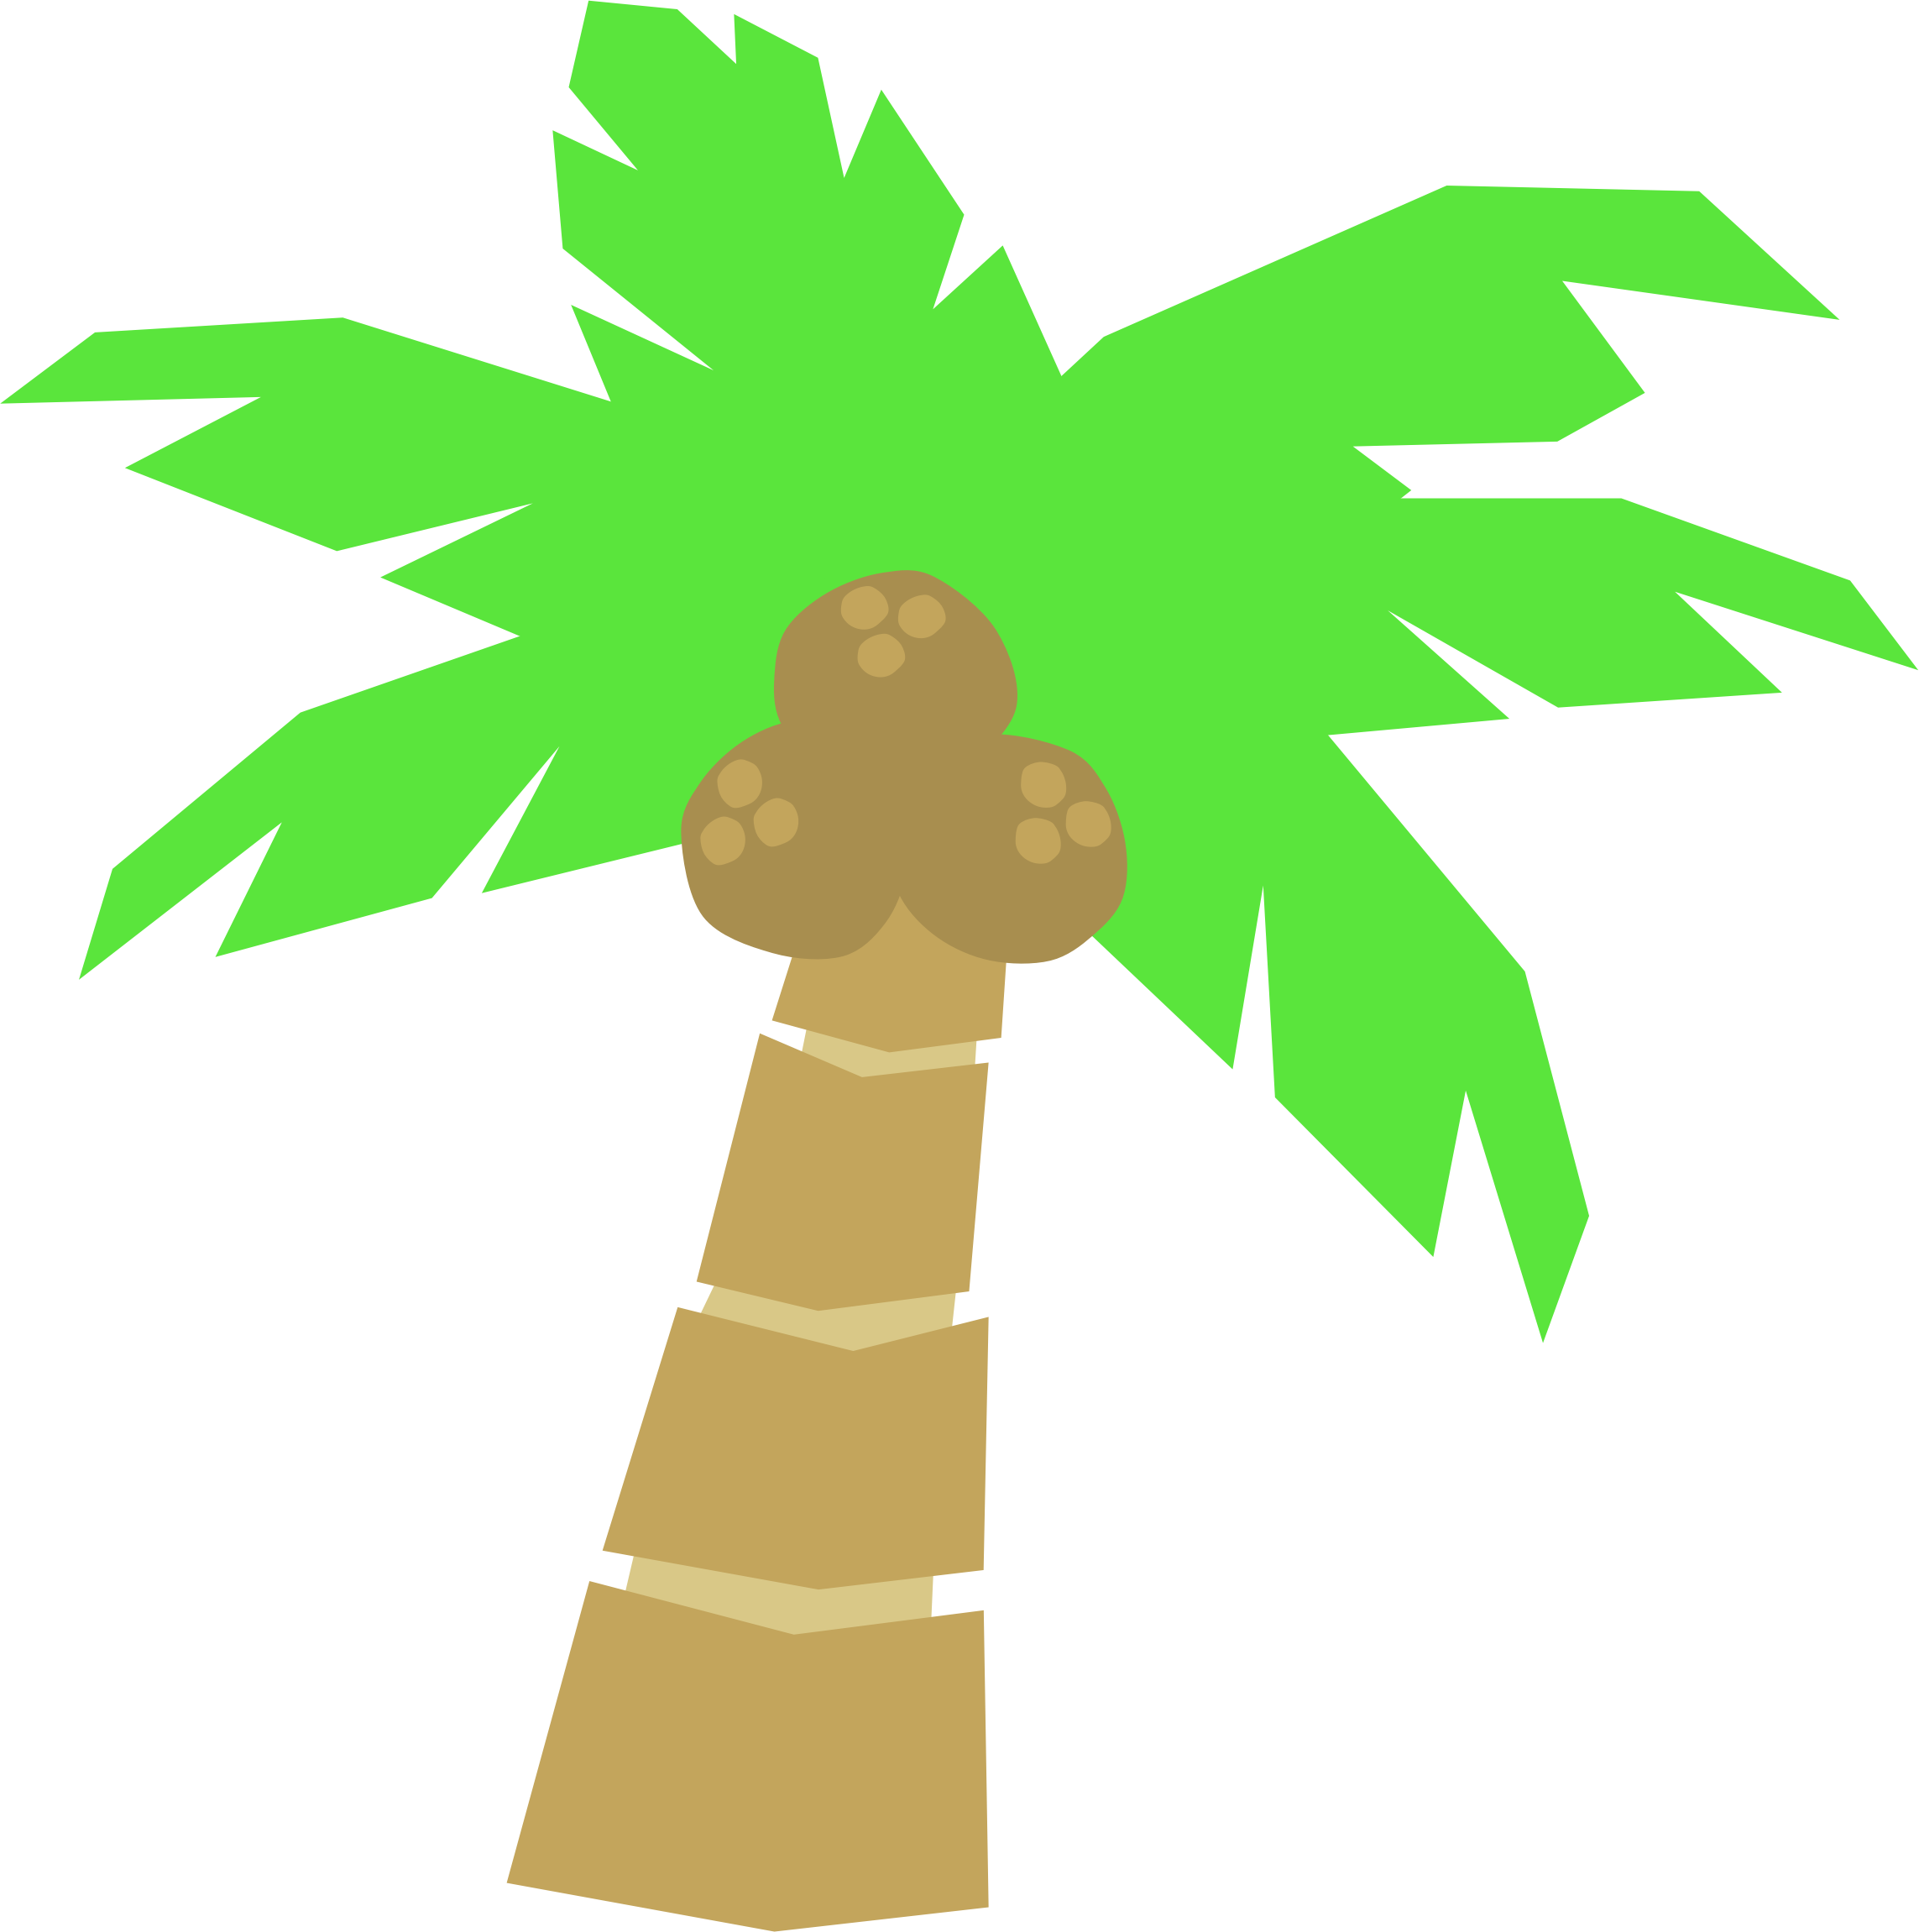 Palm tree art tropical palm trees clip art clip art palm tree 5 3.